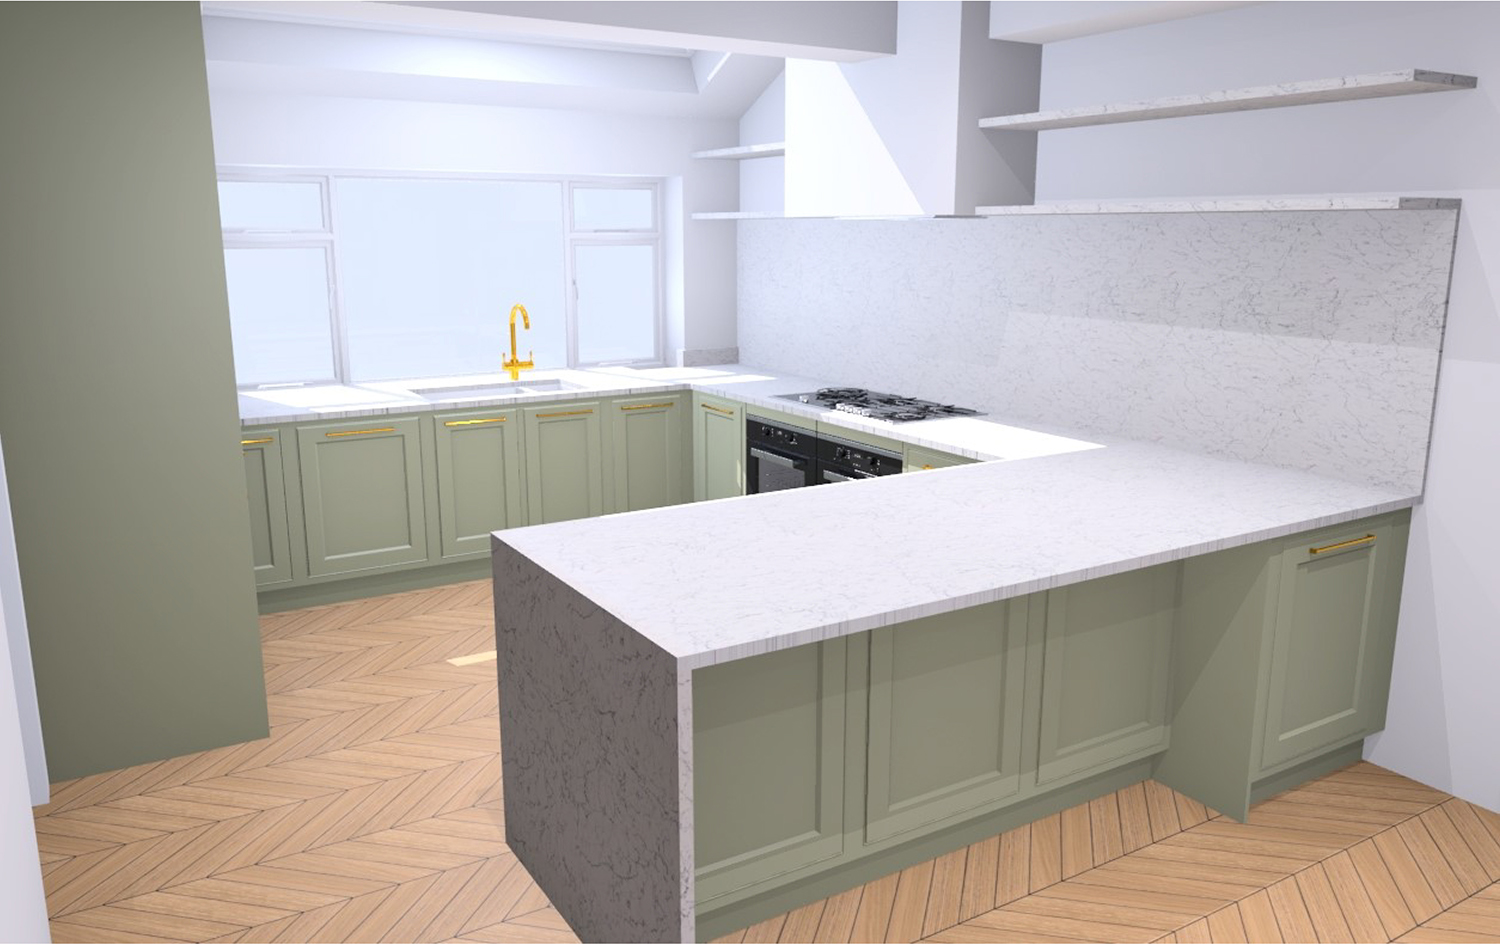 Kitchen design by John Lewis of Hungerford